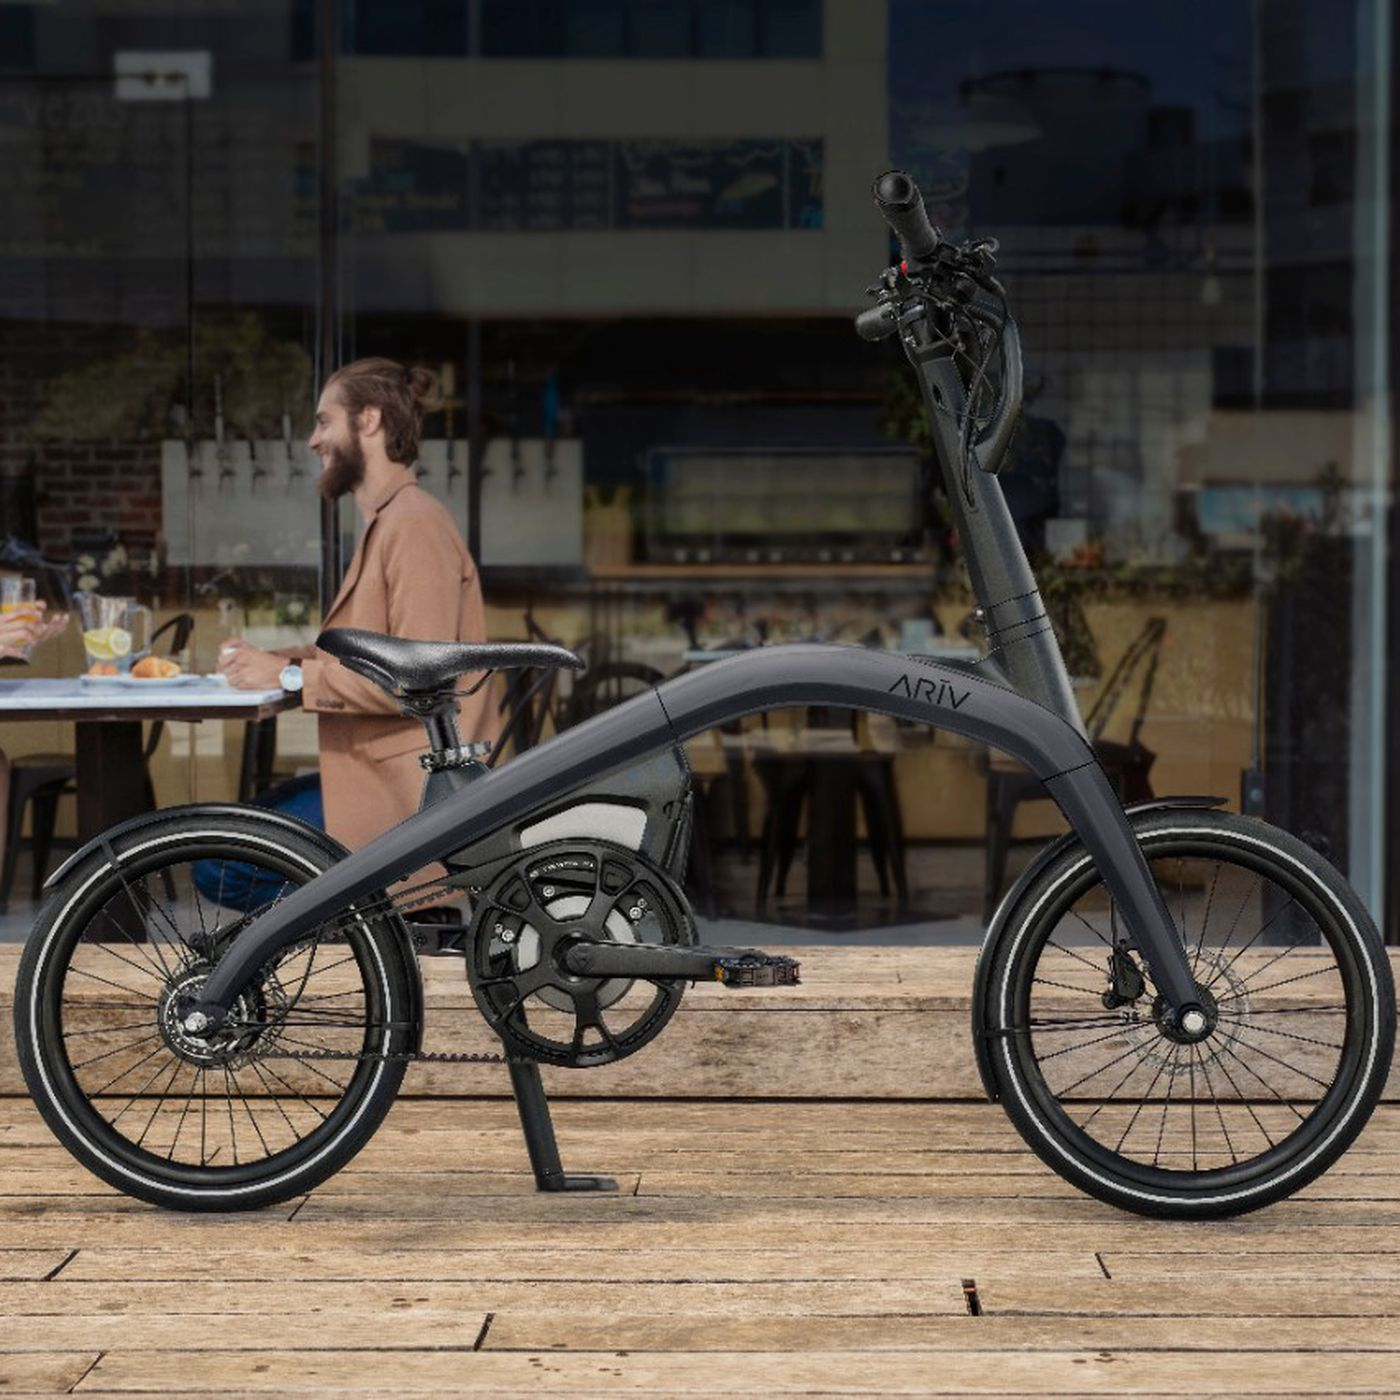 42fe73779ad General Motors starts taking orders for its first e-bike - The Verge